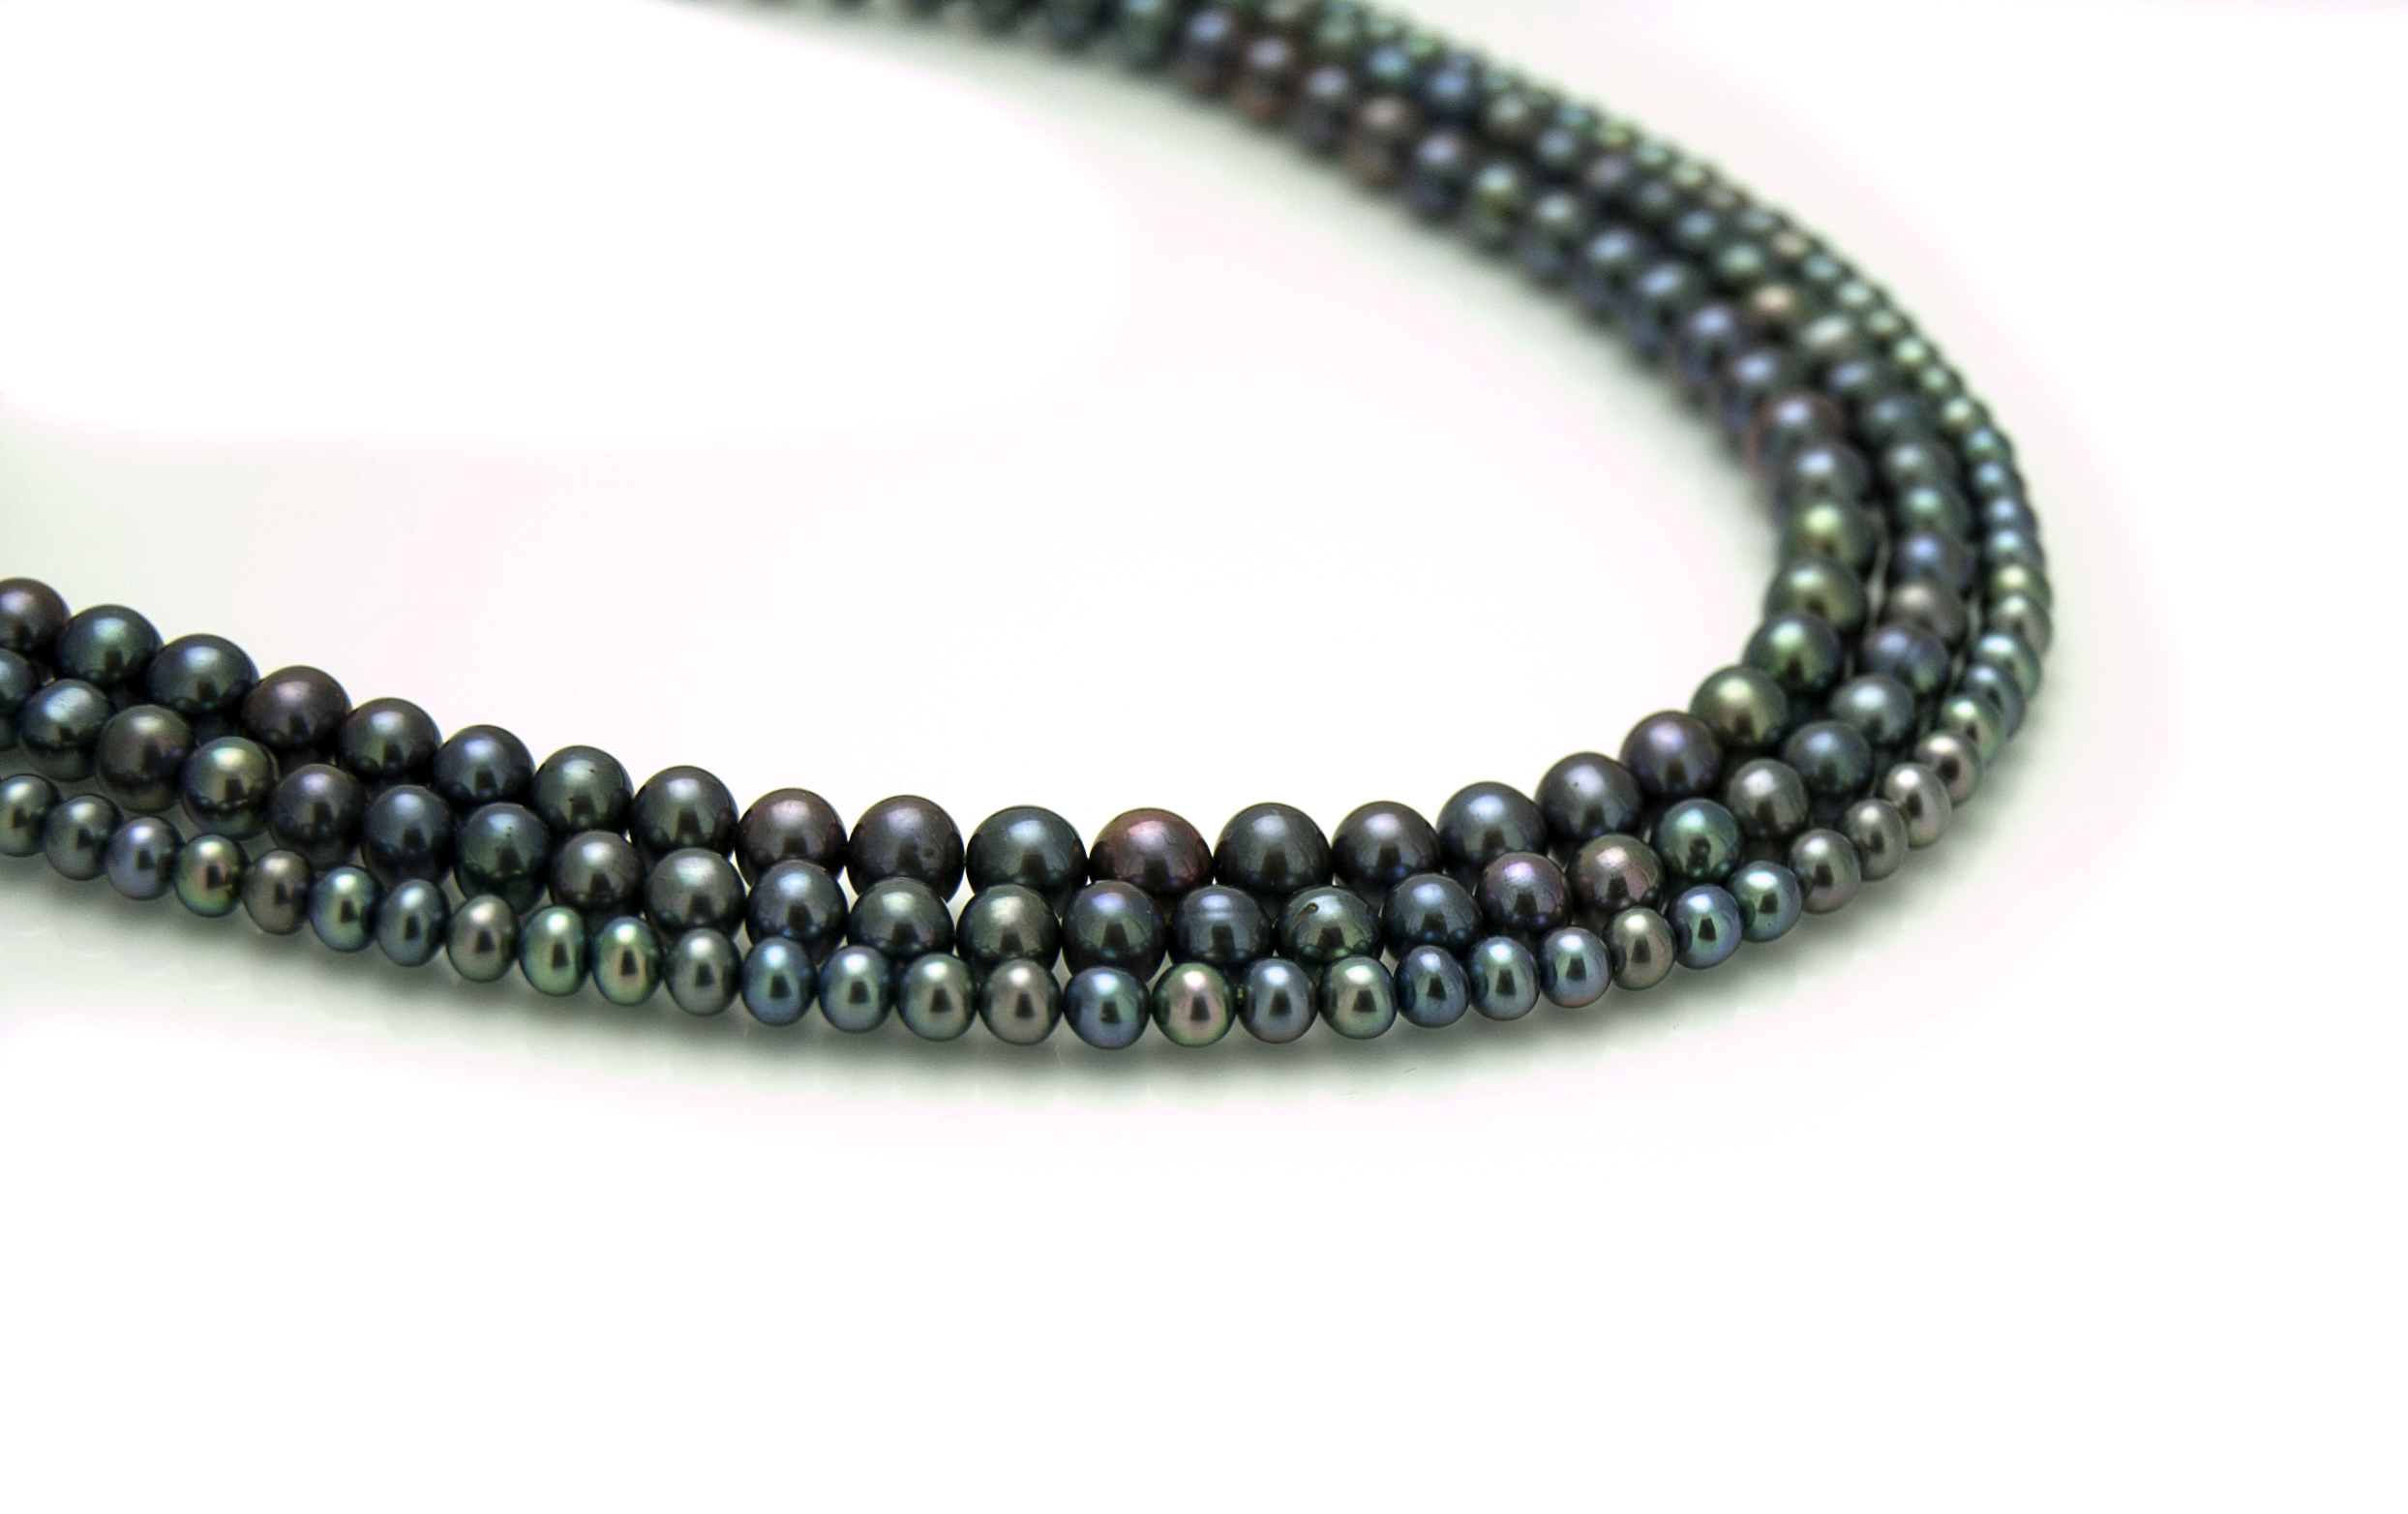 Black and round strands